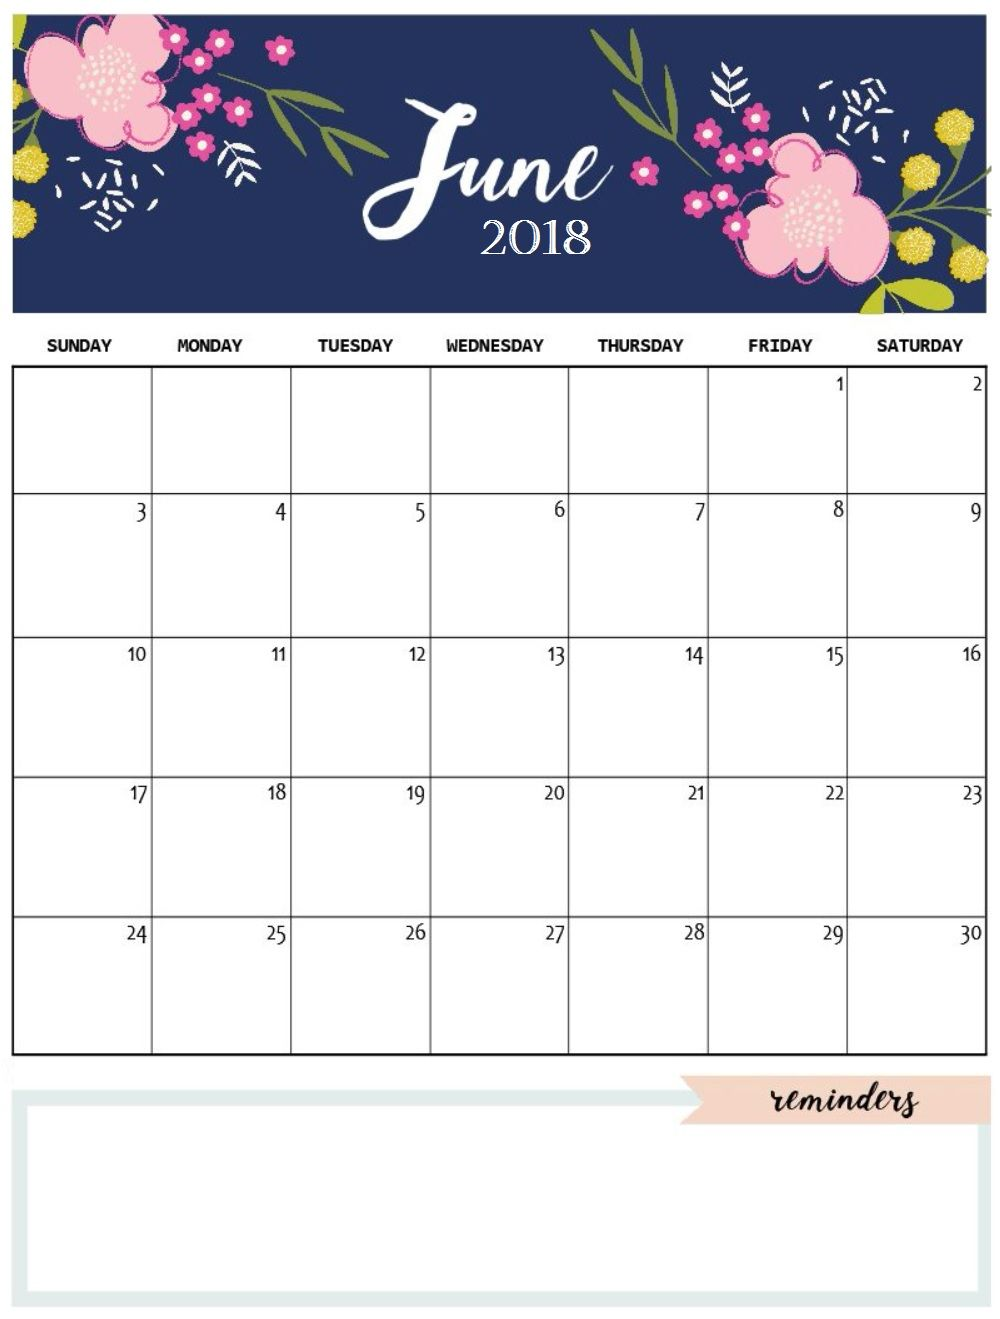 cute june 2018 calendar template calendars pinterest calendar